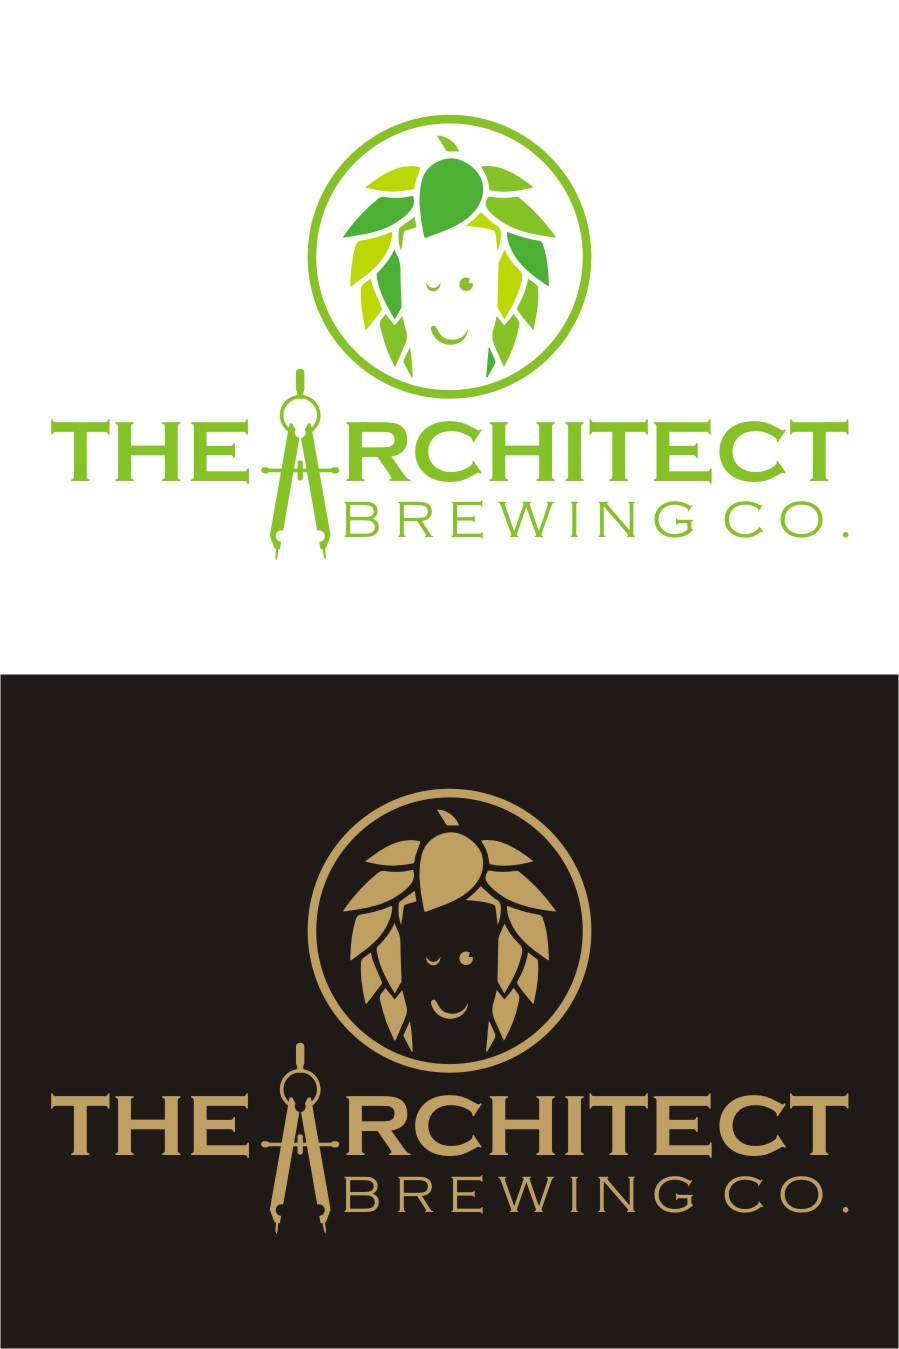 Logo Design by Spider Graphics - Entry No. 76 in the Logo Design Contest Captivating Logo Design for The Architect Brewing Co..